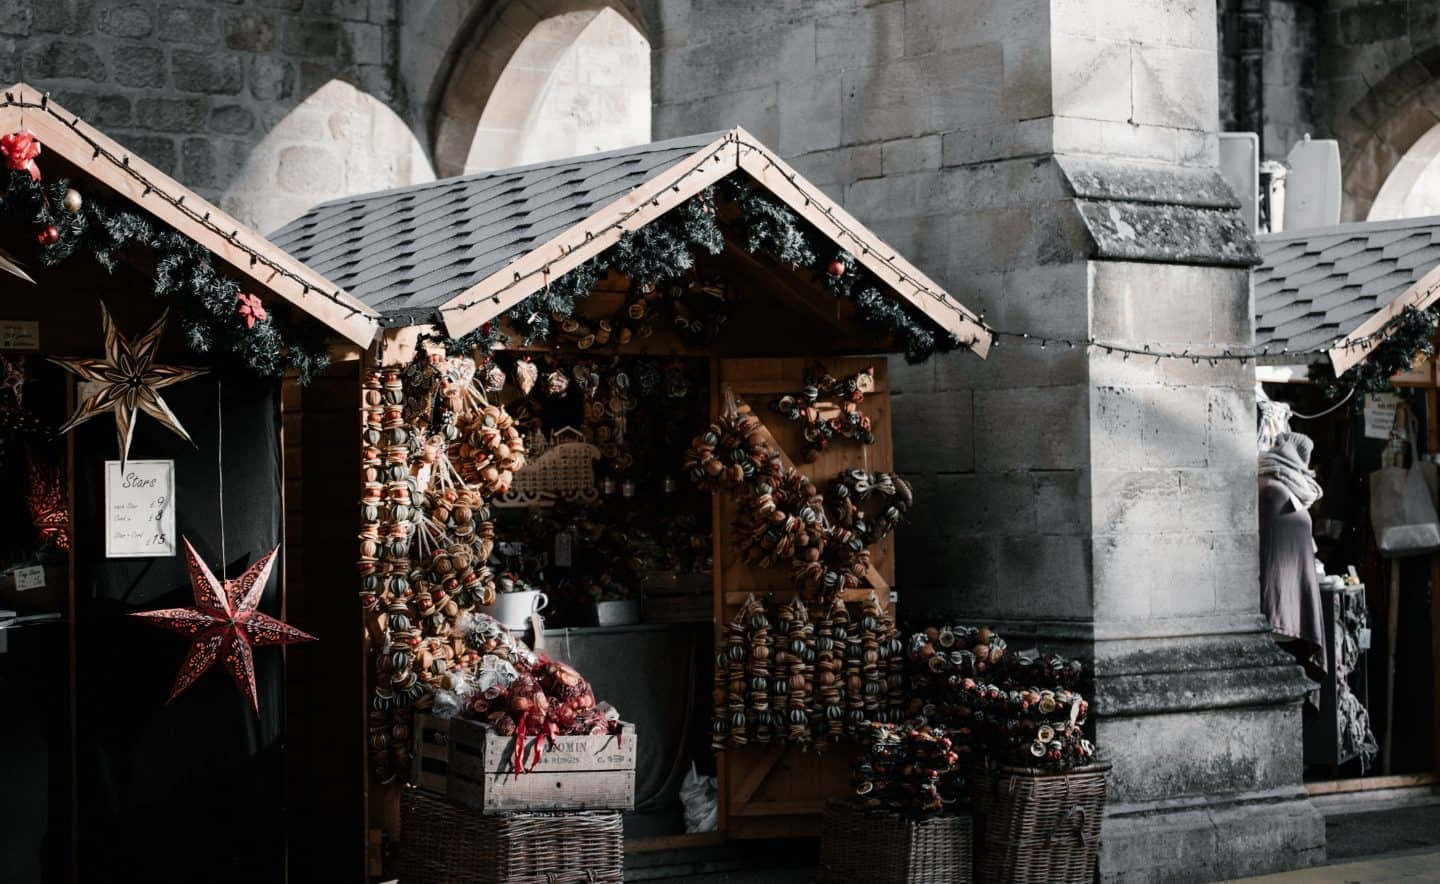 Best Christmas markets for families in 2018